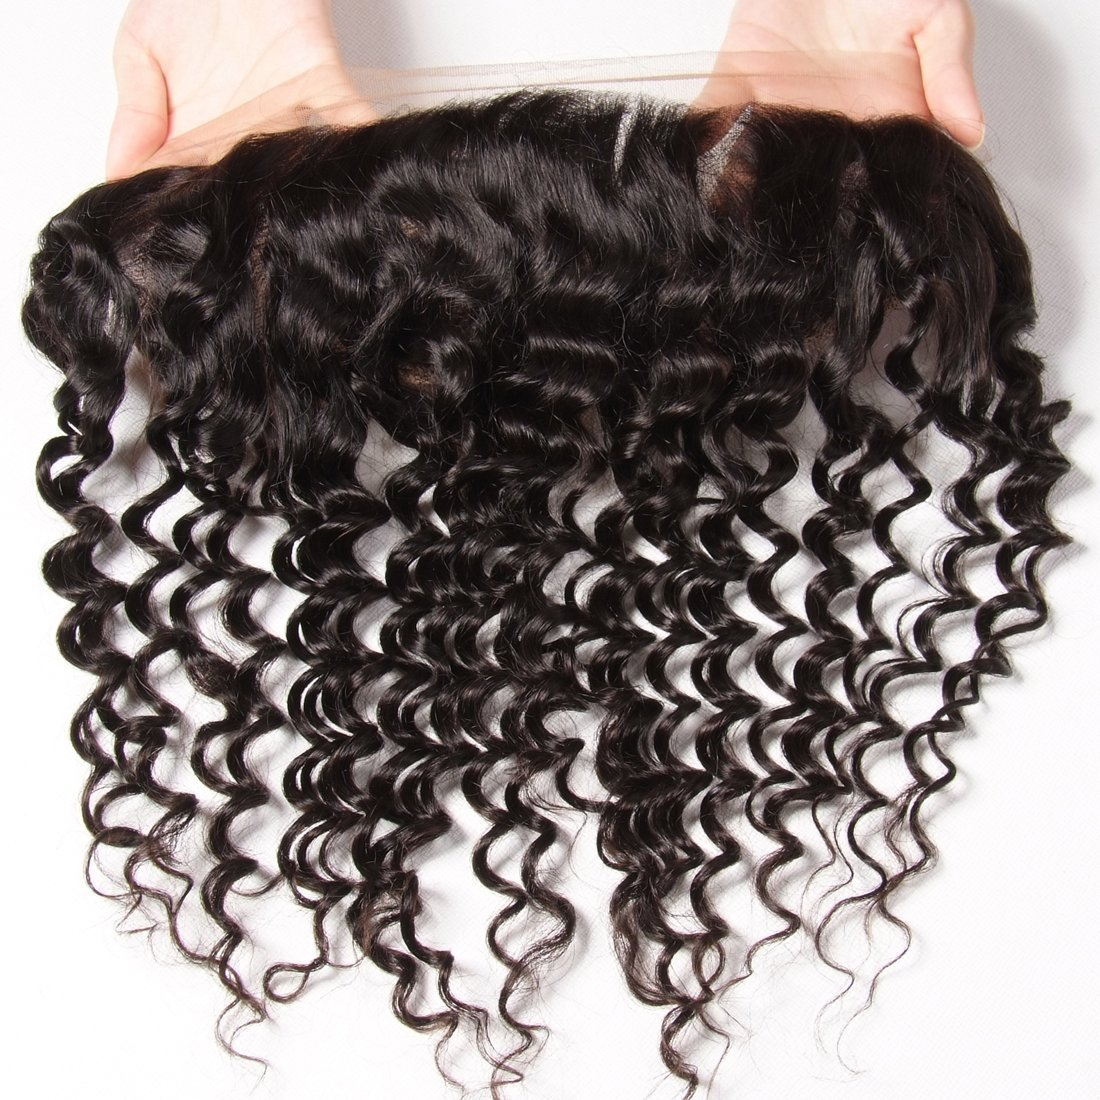 Ali Julia Hair Brazilian Virgin Deep Curly Wave Hair Bundles with Frontal Lace Closure 100% Unprocessed Human Hair Weave Extensions Natural Color (22 24 26+20 inch, Frontal with Bundles) by Yilian (Image #4)